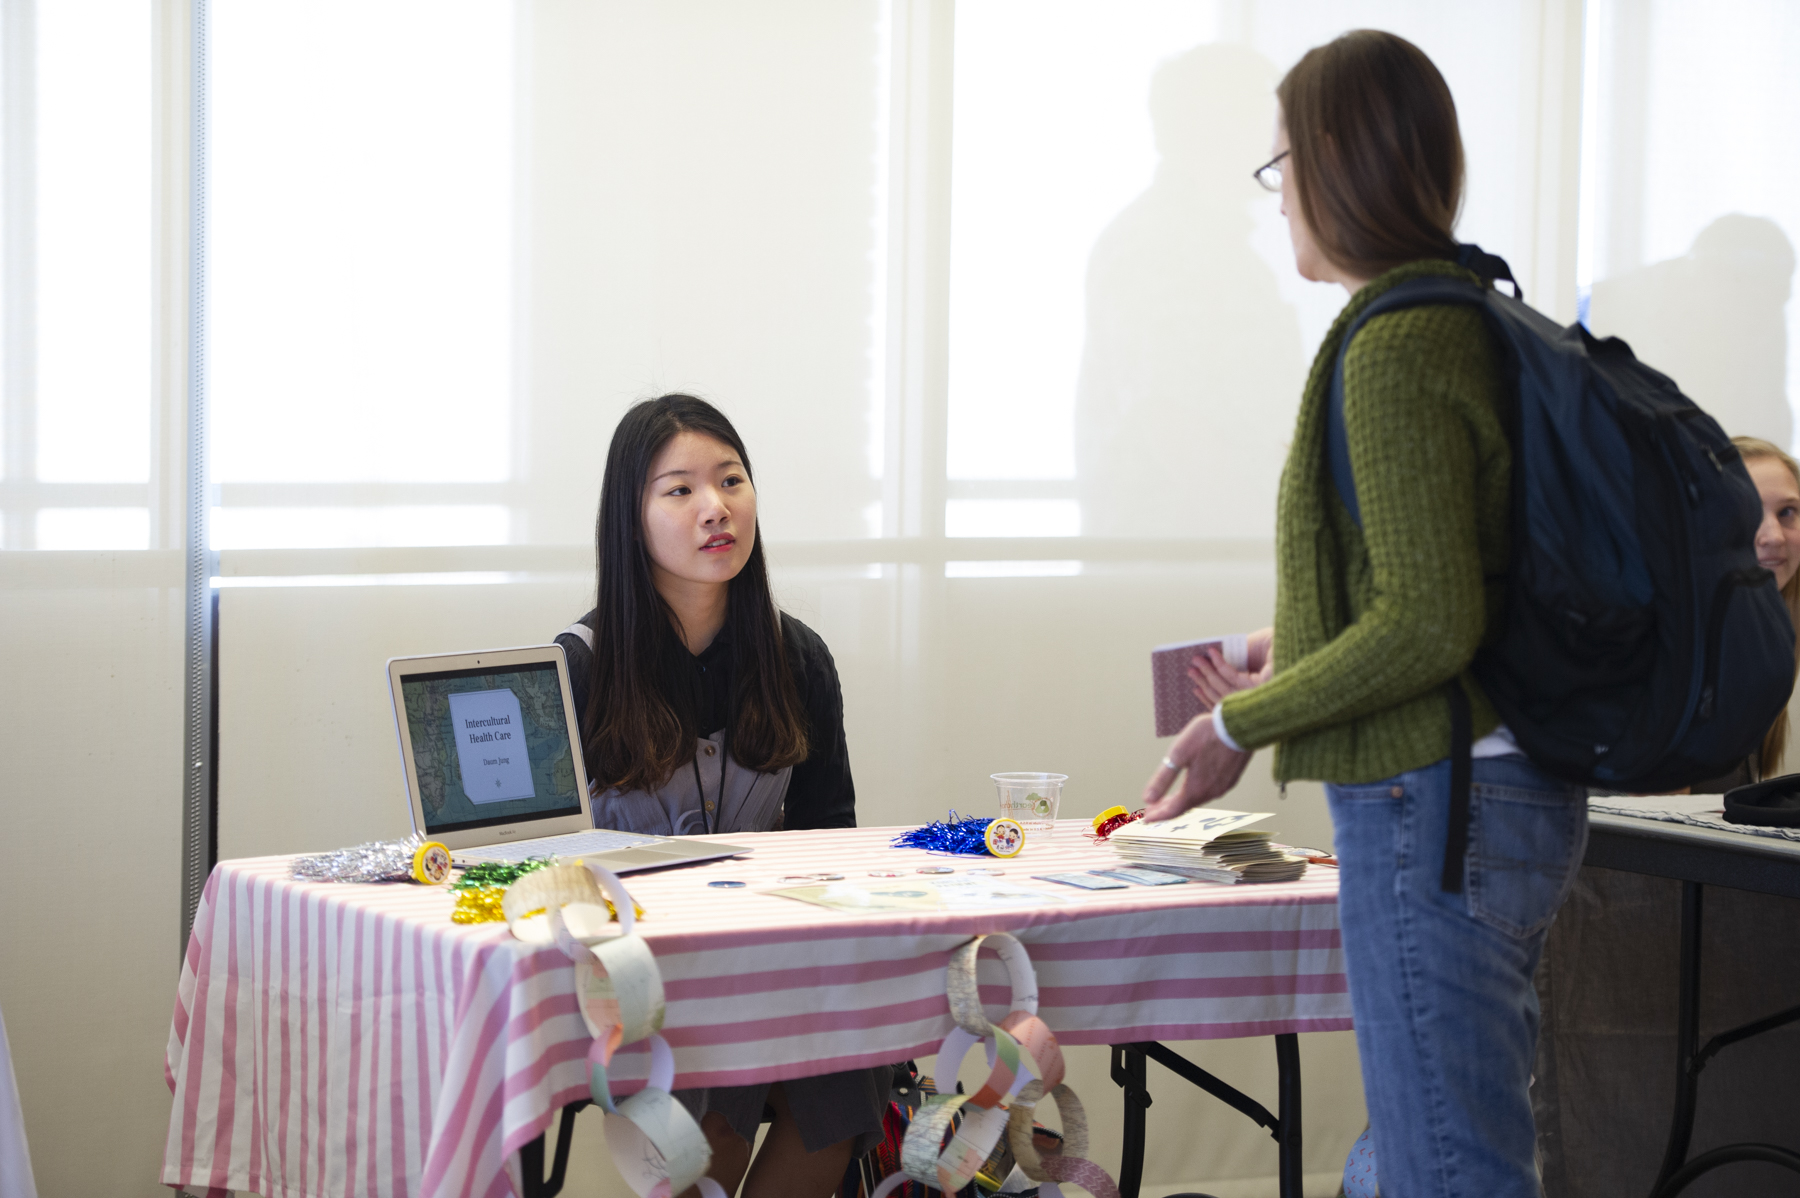 One student presenting their work to an attendee